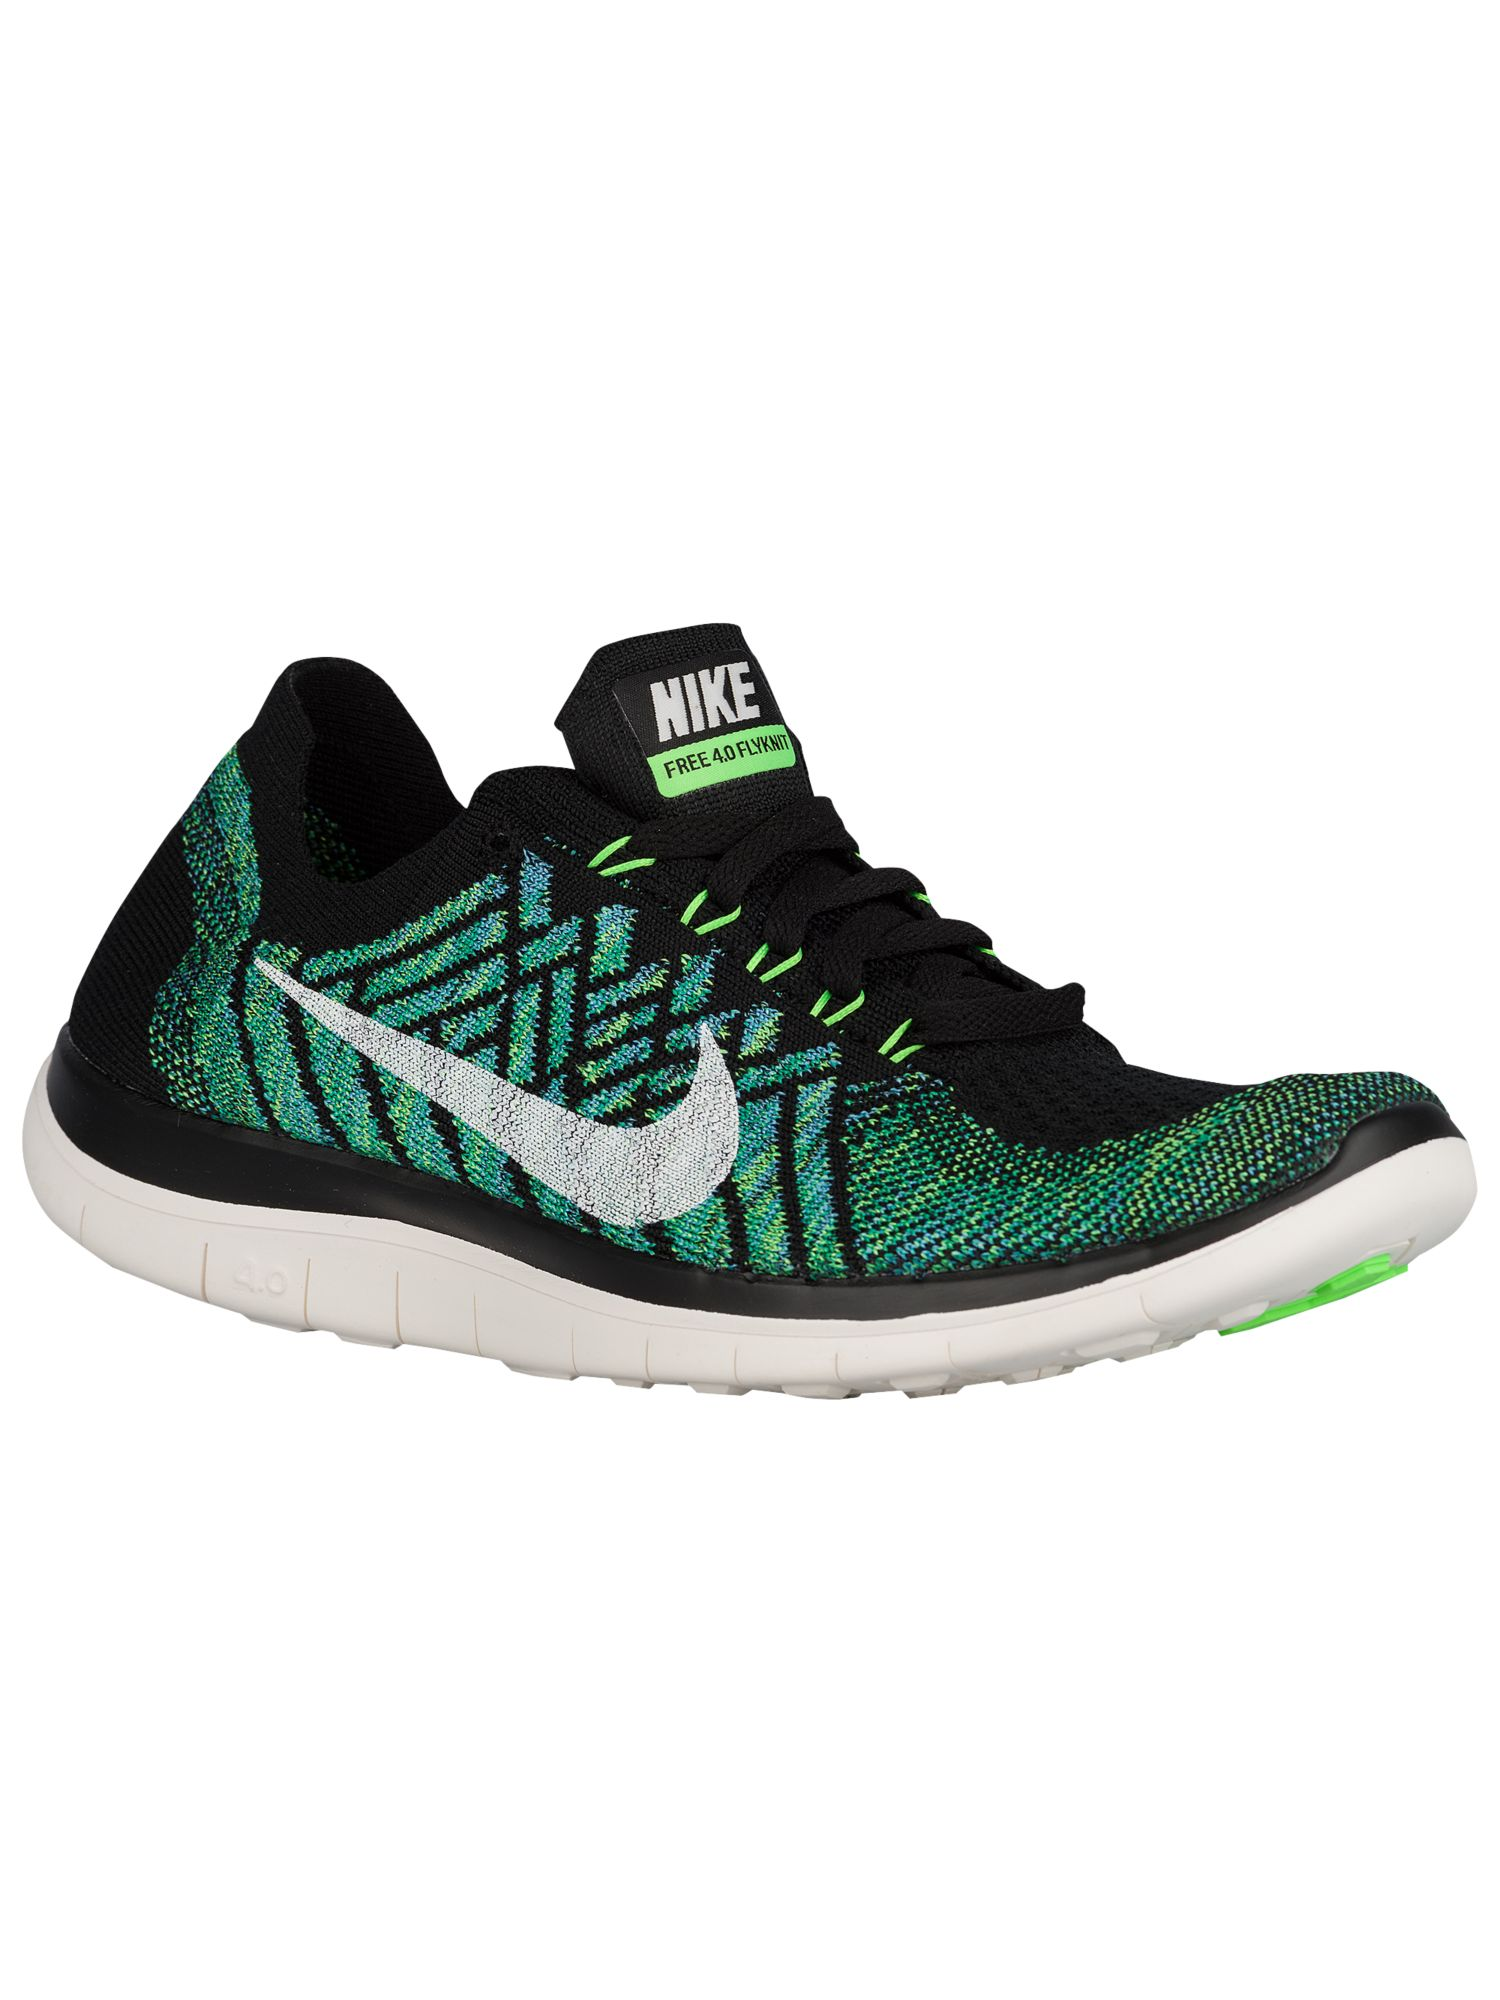 best sneakers ce82b cc8c8 Nike Free 4.0 Flyknit 2015 - Women's - Running - Shoes - Black/Voltage  Green/Lucky Green/Sail